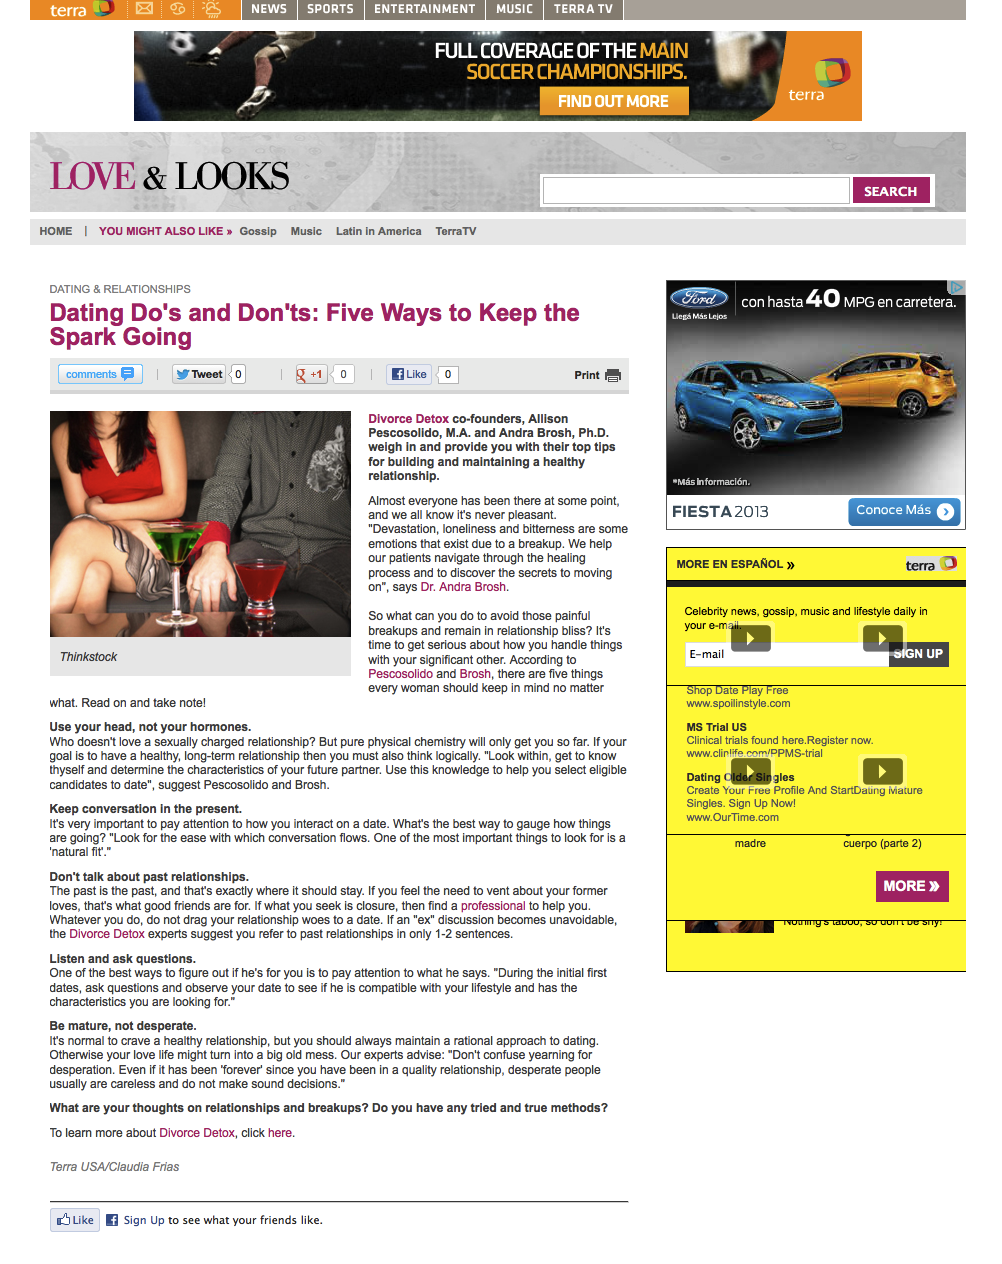 DATING ARTICLE